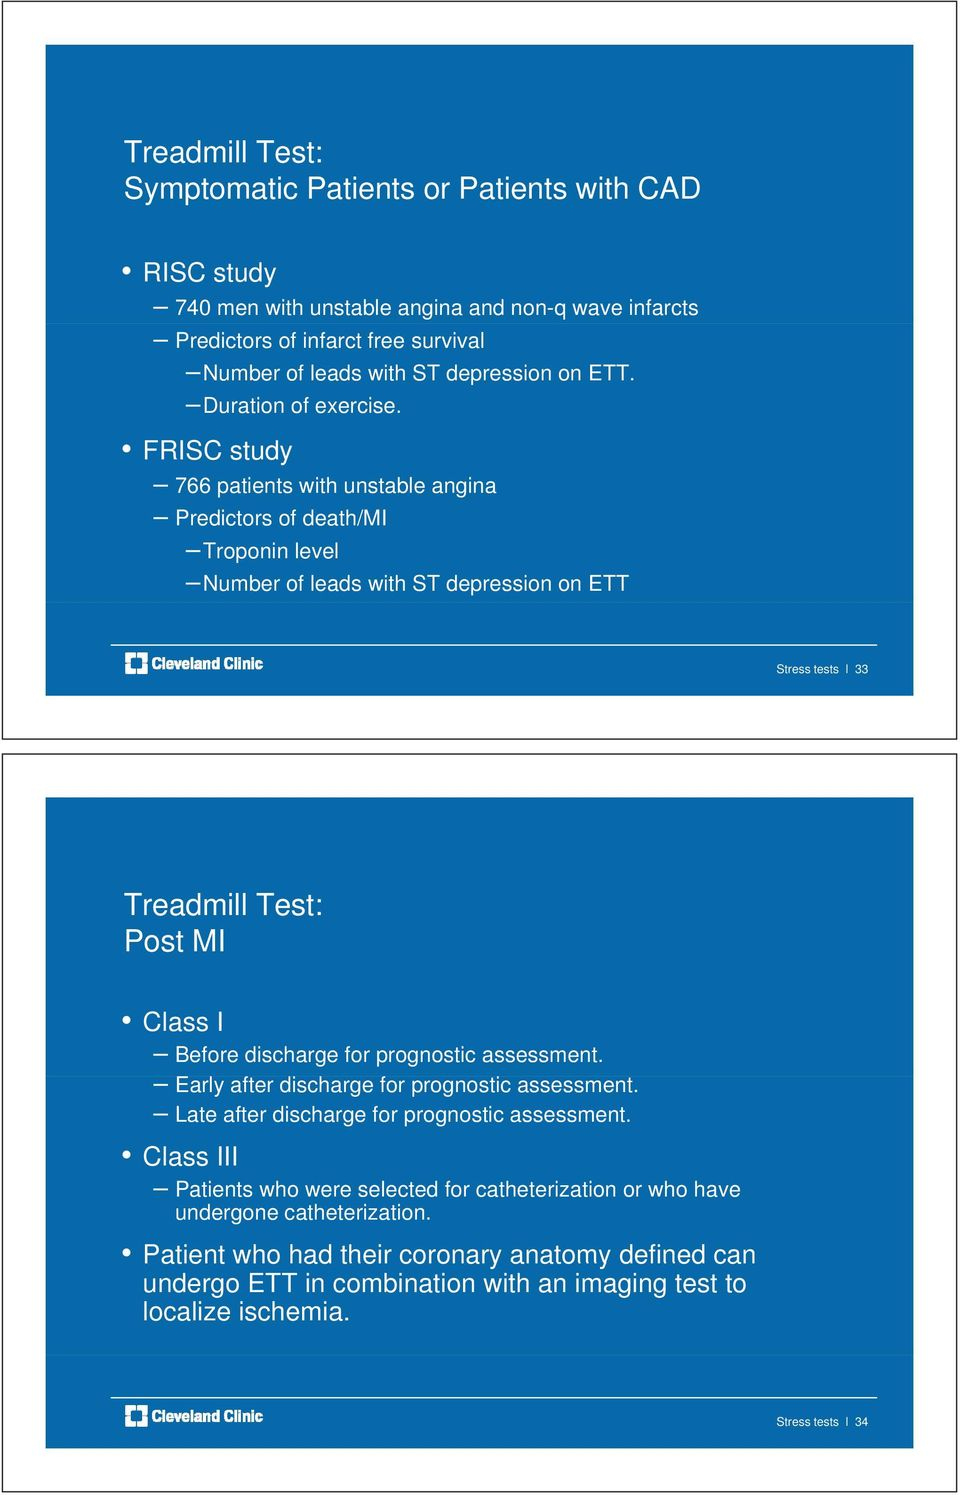 FRISC study 766 patients with unstable angina Predictors of death/mi Troponin level Number of leads with ST depression on ETT Stress tests l 33 Treadmill Test: Post MI Class I Before discharge